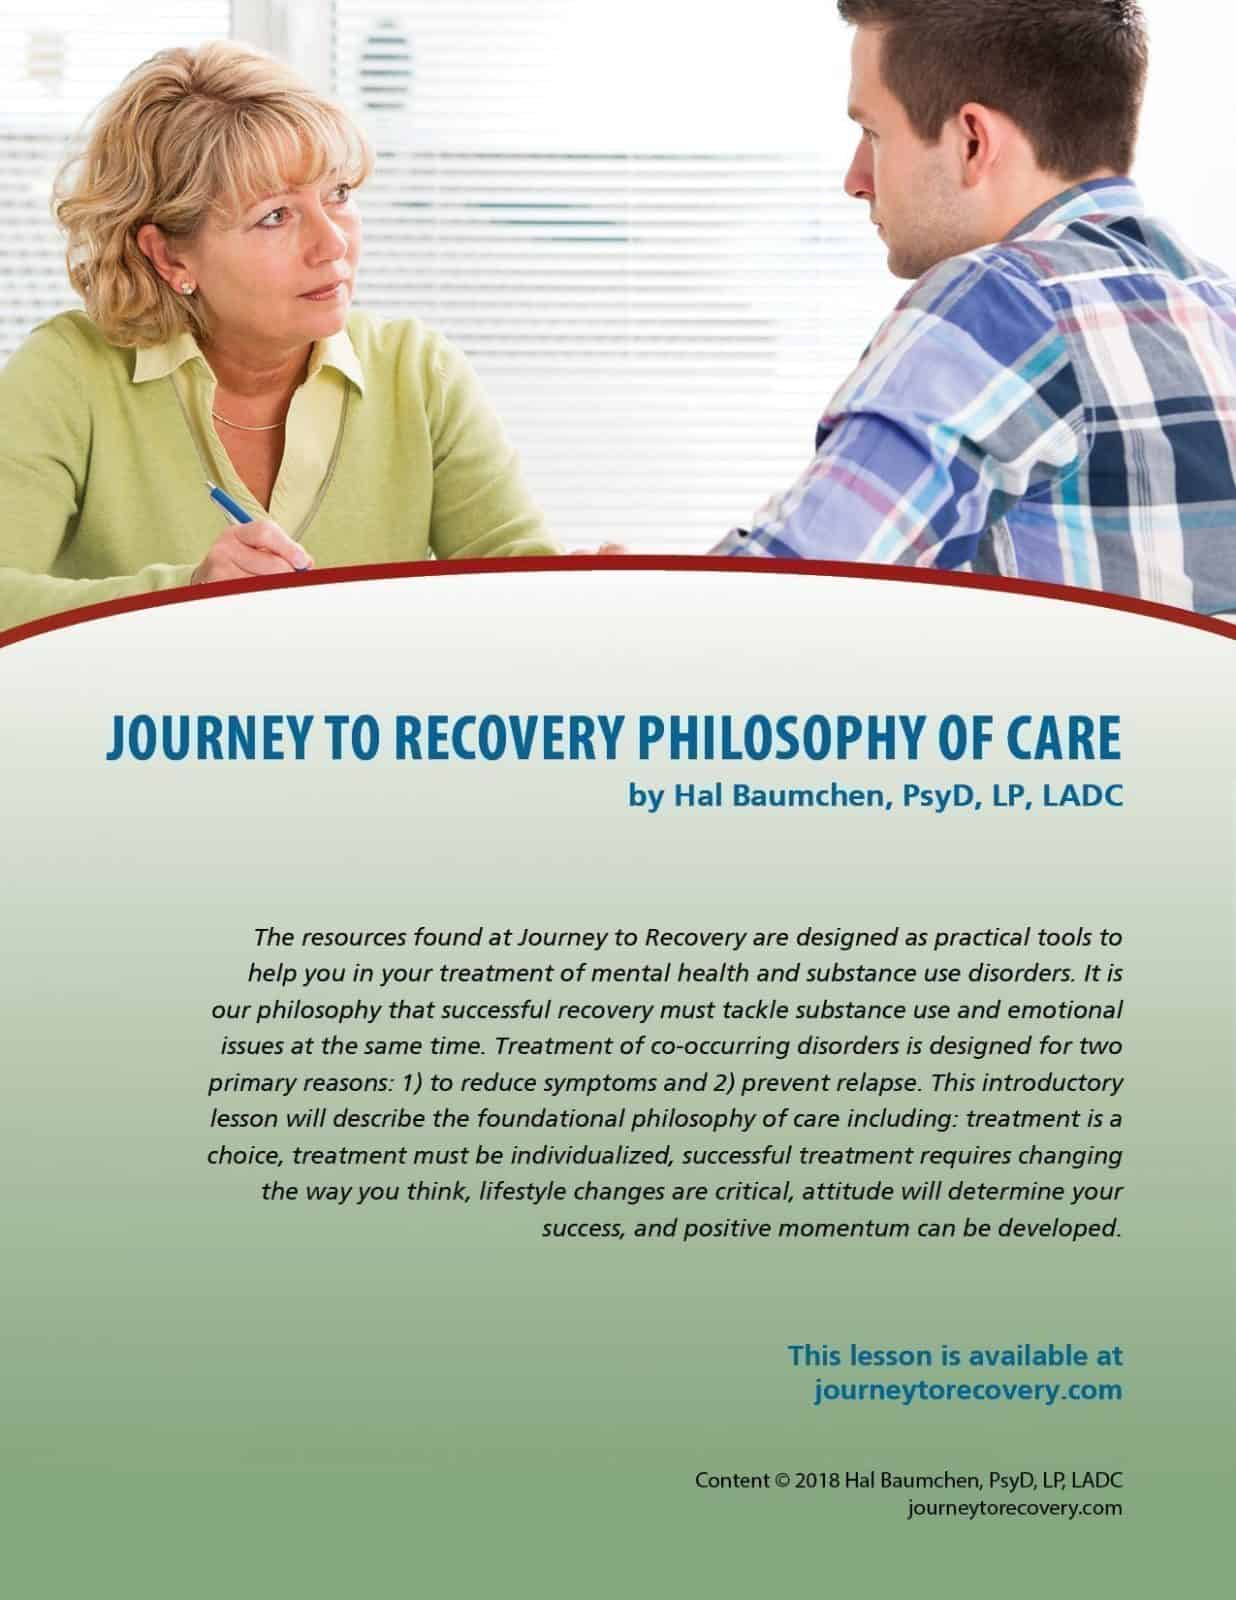 Journey to Recovery Philosophy of Care (COD Lesson)